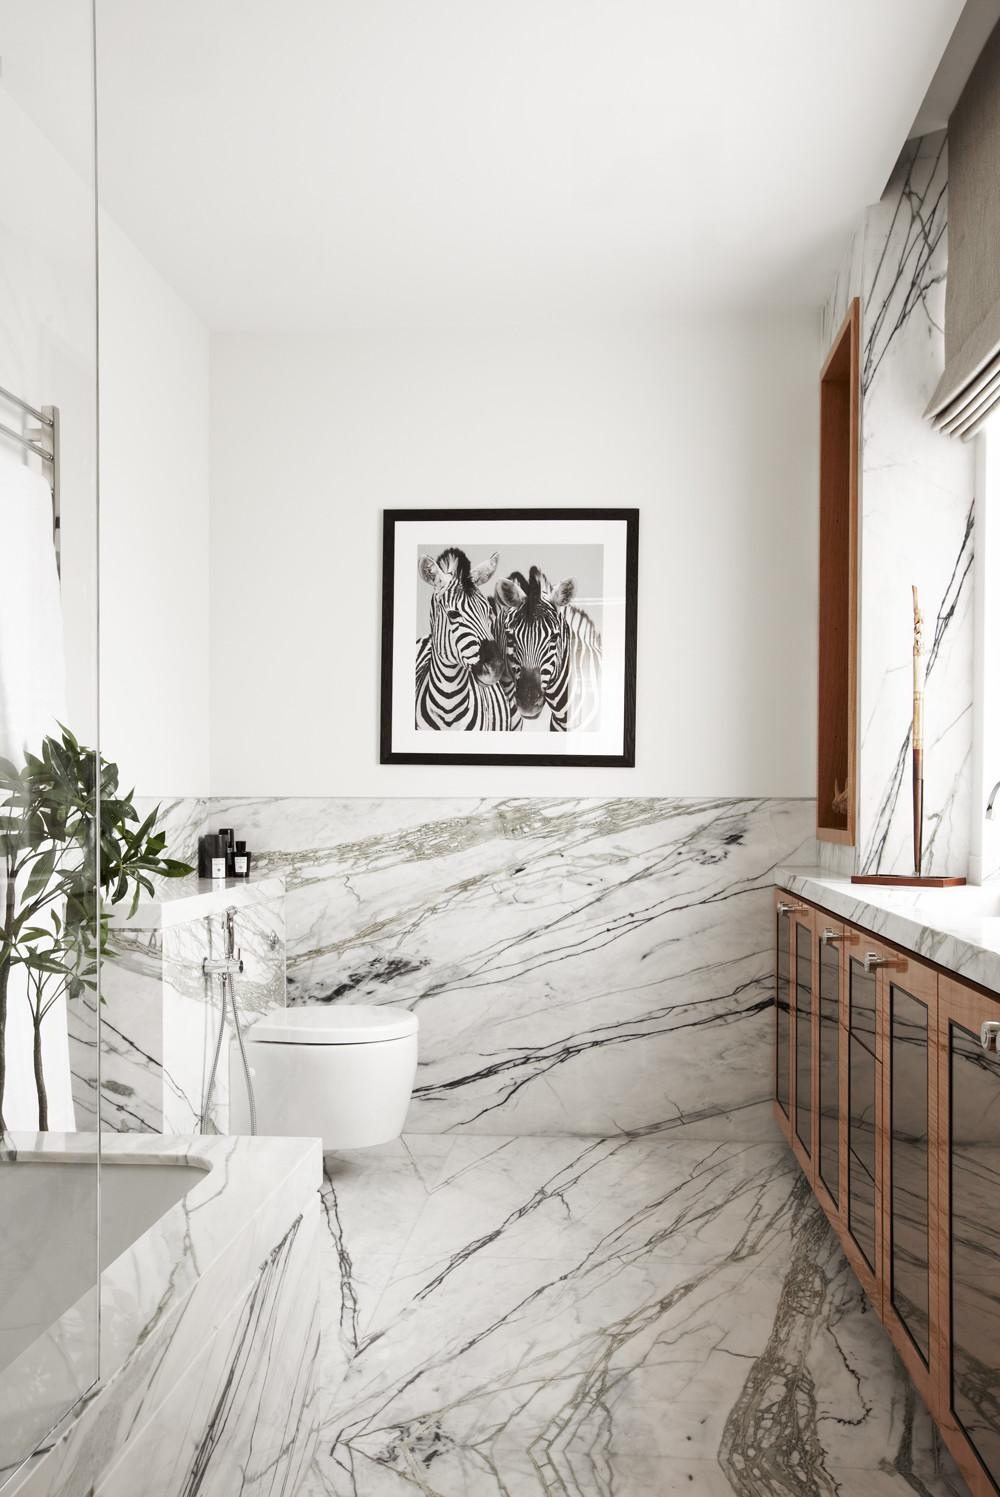 Stylish Modern Marble Decor Ideas That Add Significant Value To Your Home Trends For 2020 Photo Examples Decoratorist